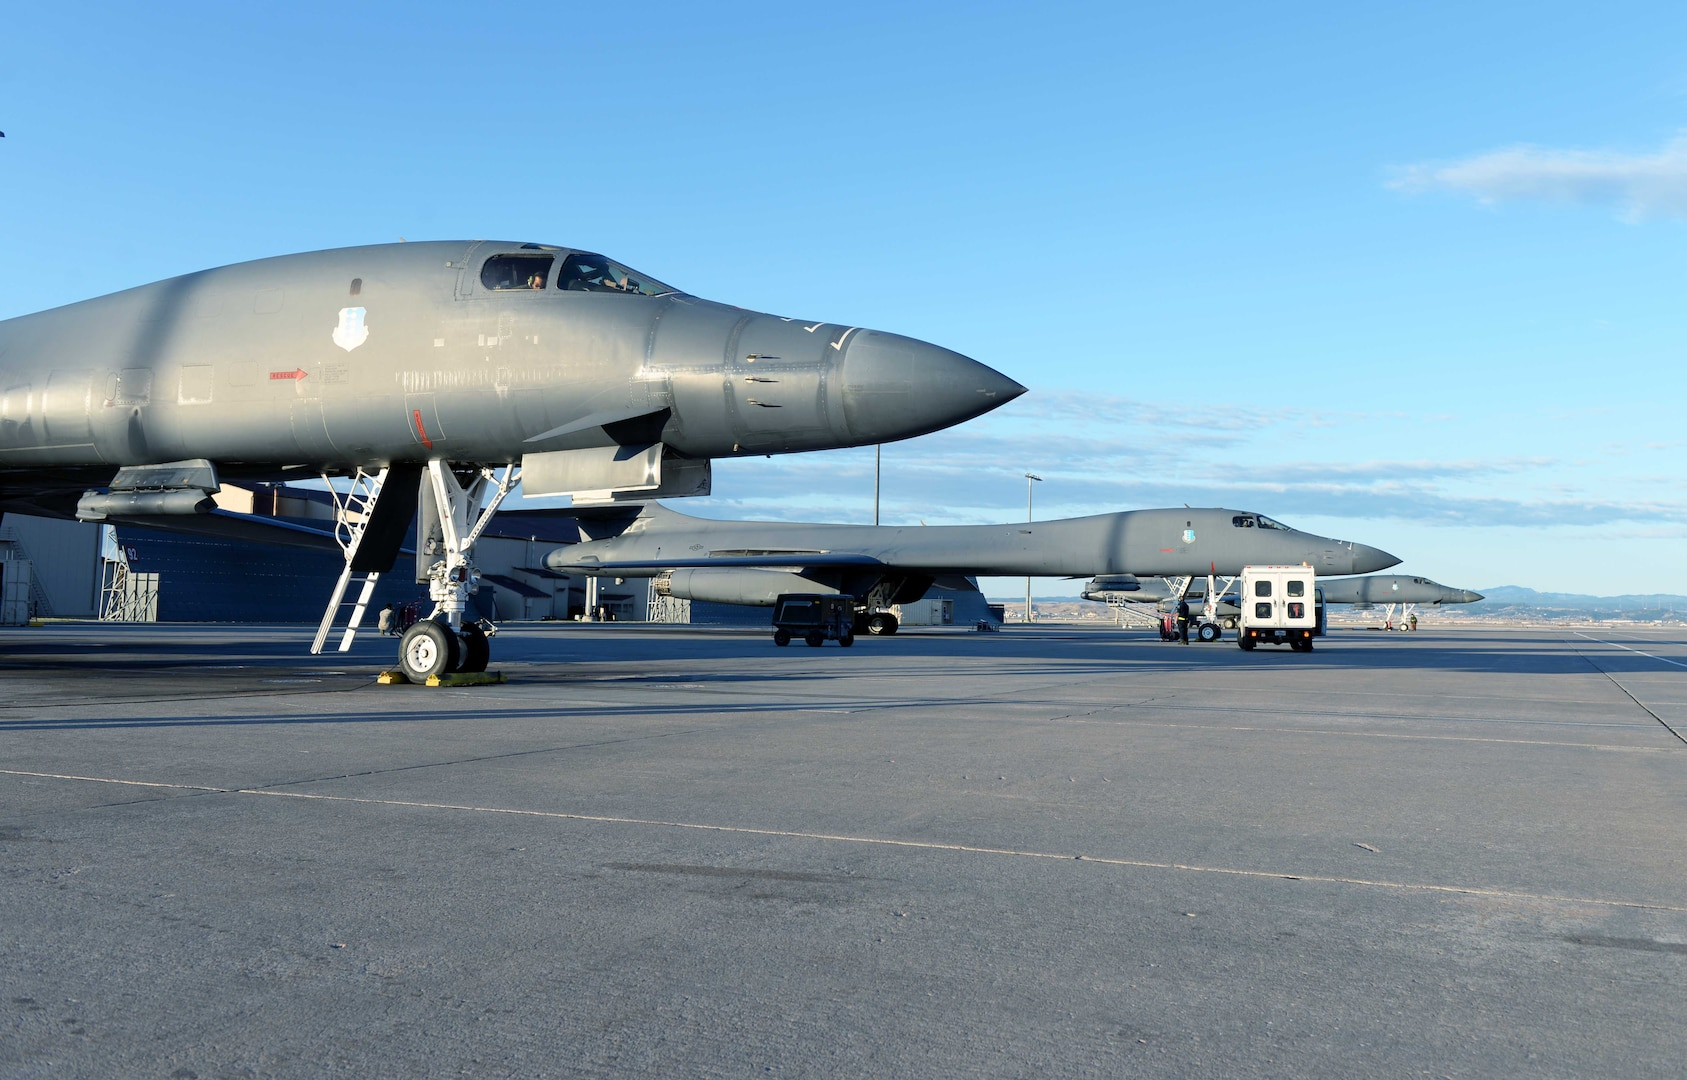 A U.S. Air Force B-1B Lancer stands ready prior to departing Ellsworth Air Force Base, S.D., April 21, 2020. Carrying the largest conventional payload of both guided and unguided weapons in the Air Force inventory, the multi-mission B-1 is the backbone of America's long-range bomber force. The Department of Defense maintains command and control of its bomber force for any mission, anywhere in the world, at any time. (U.S. Air Force photo by Airman Quentin K. Marx)